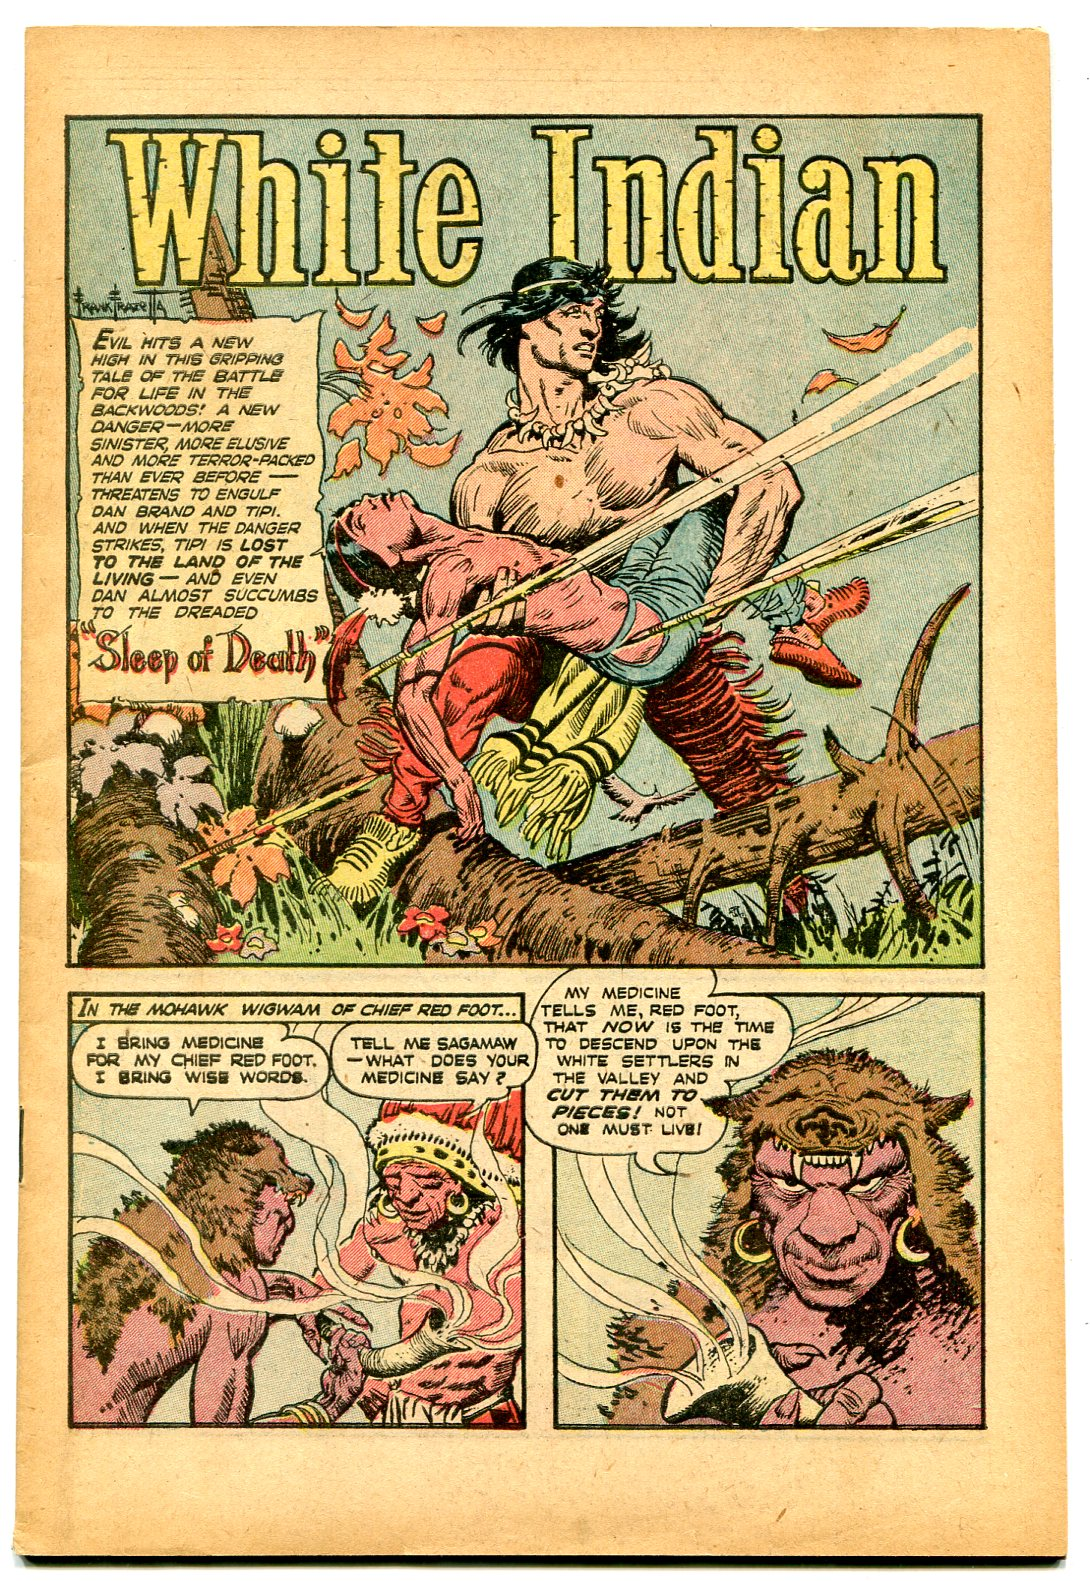 White Indian #12 1953-FRANK FRAZETTA ART-coverless reading copy: (1953)  Comic | DTA Collectibles